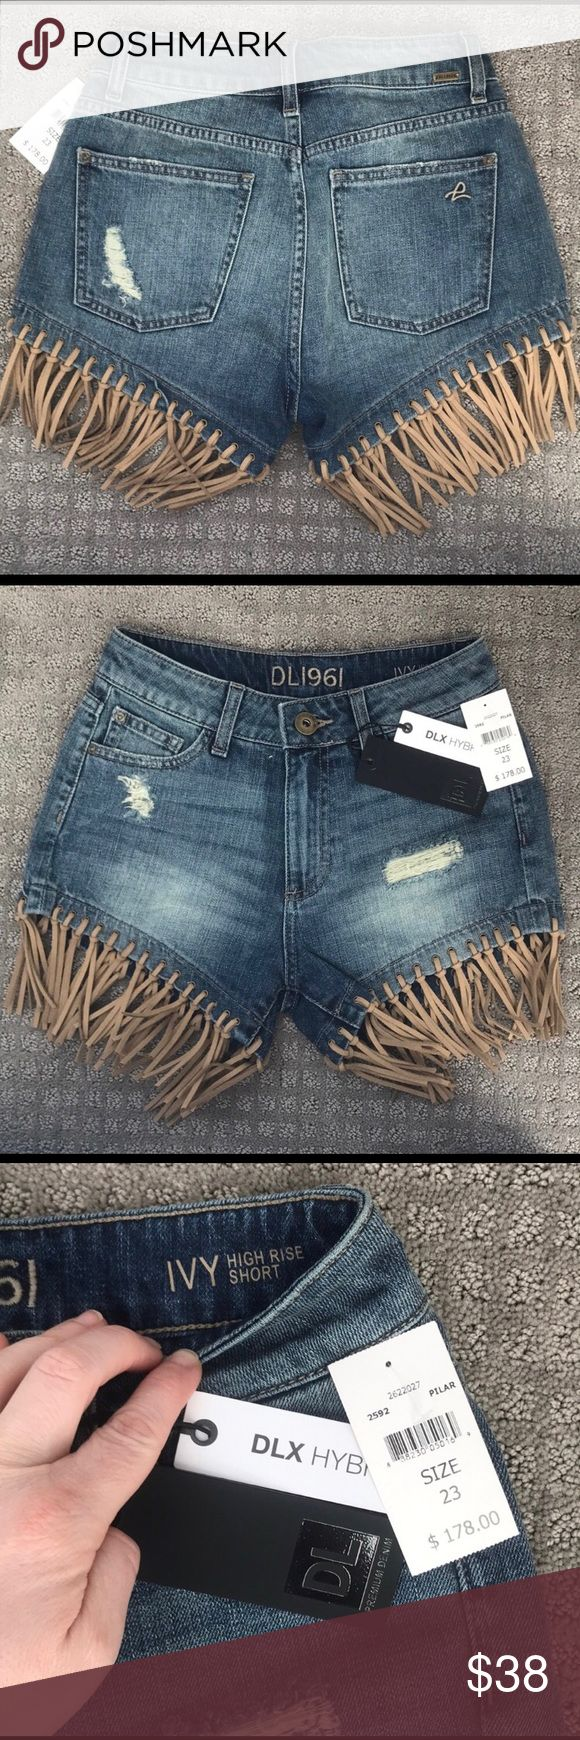 """DL1961 Distressed Denim Jean Shorts with Fringe Coachella Ready! Contrast fringe sways from the hem of this Casual- Chic short constructed from light blue denim. Thread bare patches add a hint of stylish dressing.   3"""" inseam 23"""" leg opening 9 1/2in rise  Zip fly with button closure 5- pocket style  100% American Cotton Natural Indigo Dye DL1961 Shorts Jean Shorts"""